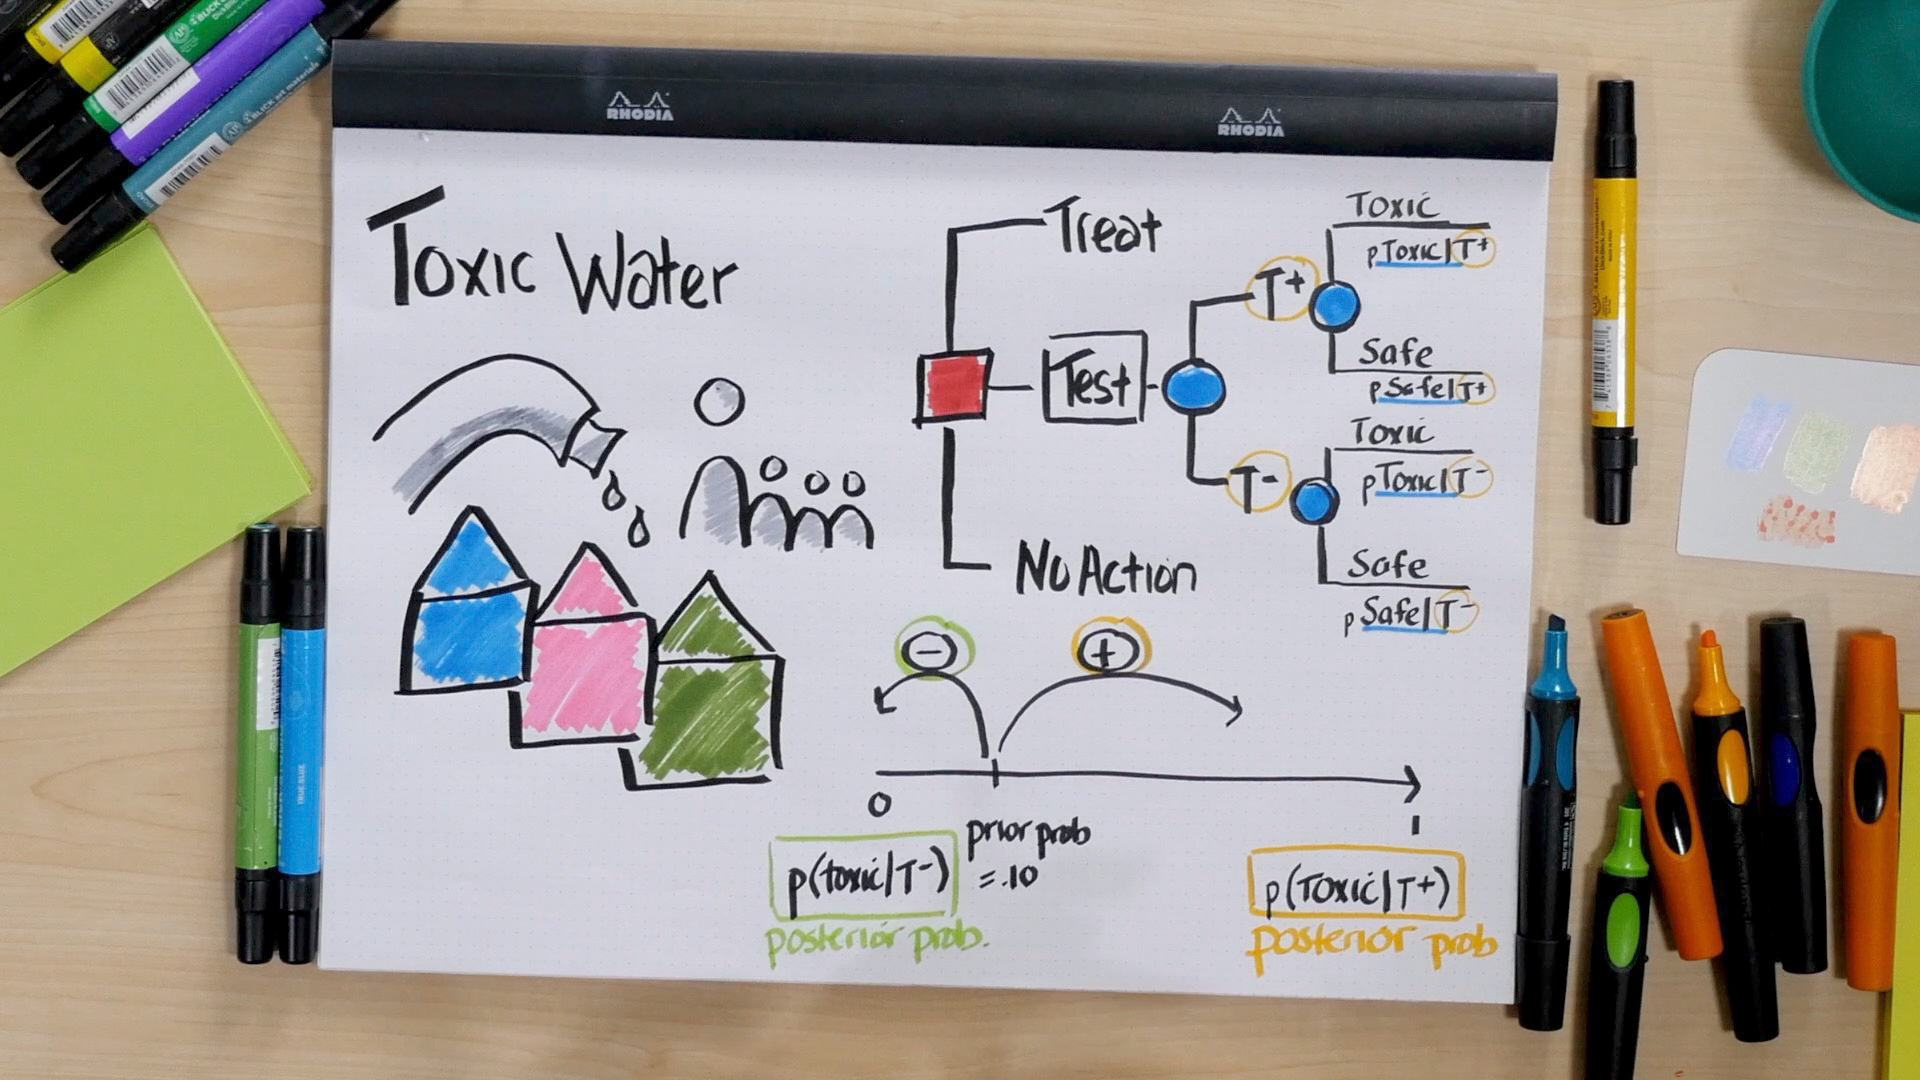 Drawing on table with colorful markers showing a decision tree about Toxic Water